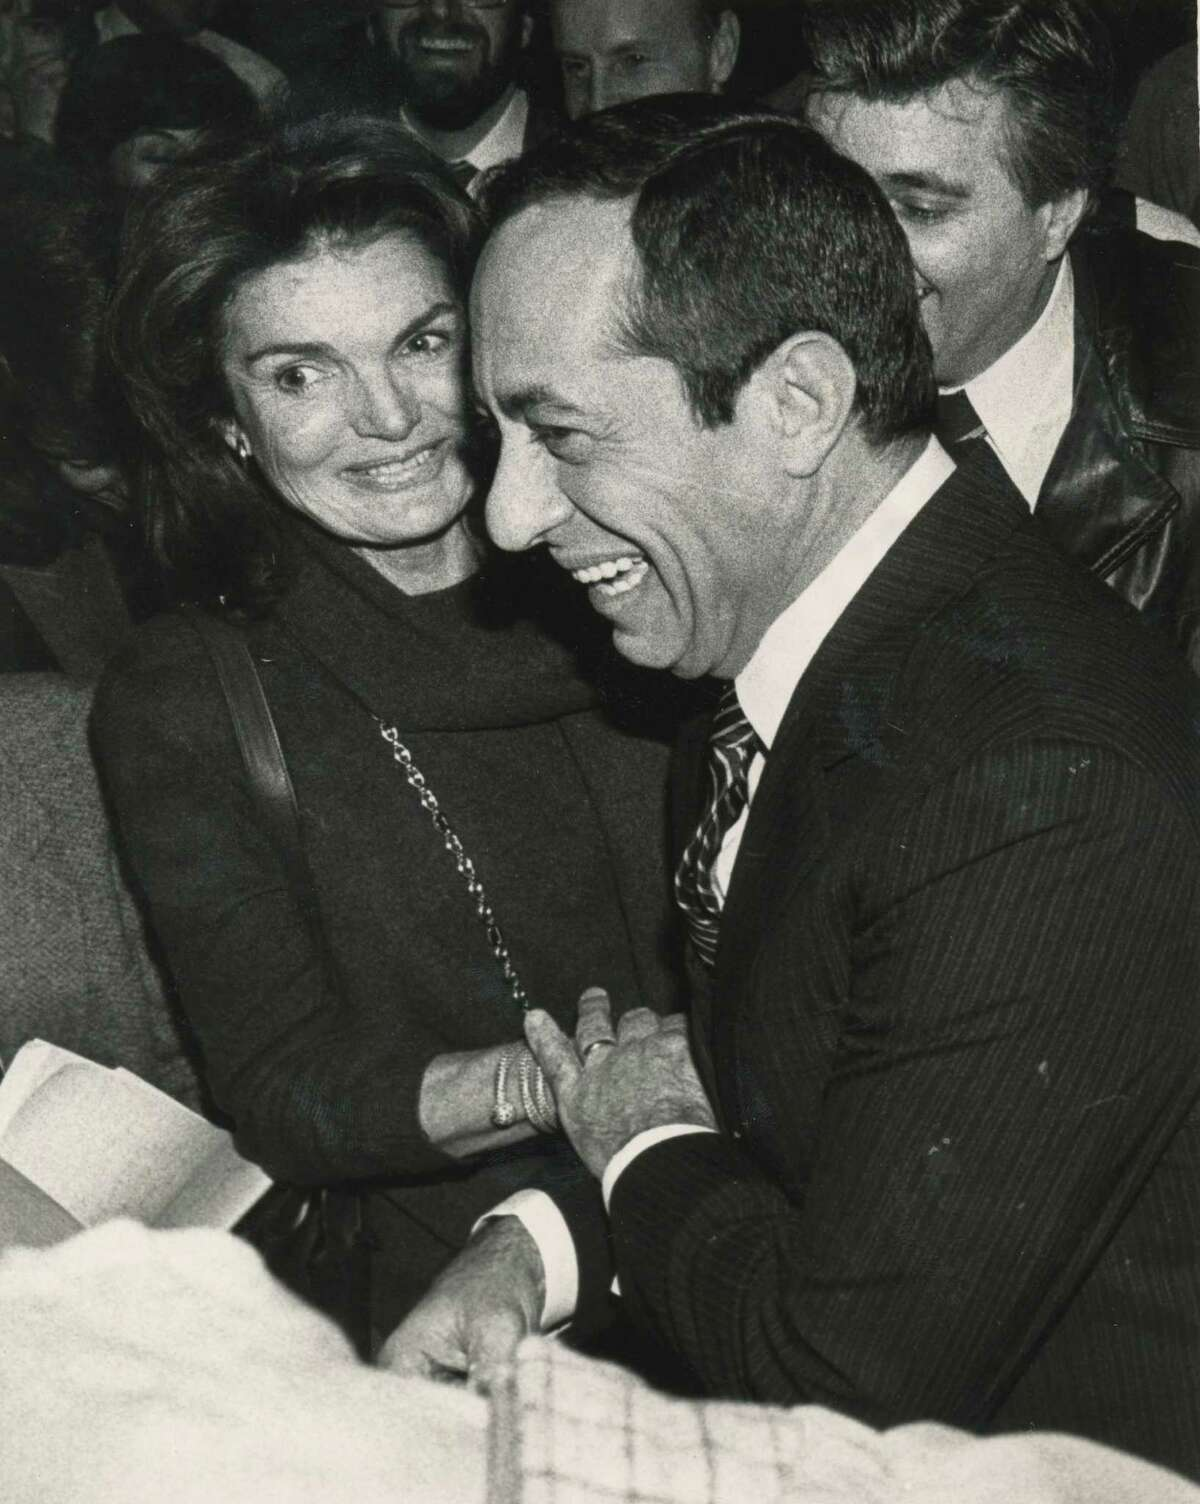 Gov. Mario Cuomo greets Jacqueline Onassis at the Capitol Feb. 8, 1984, in Albany, N.Y. (Paul Niskern Sr./Times Union archive)